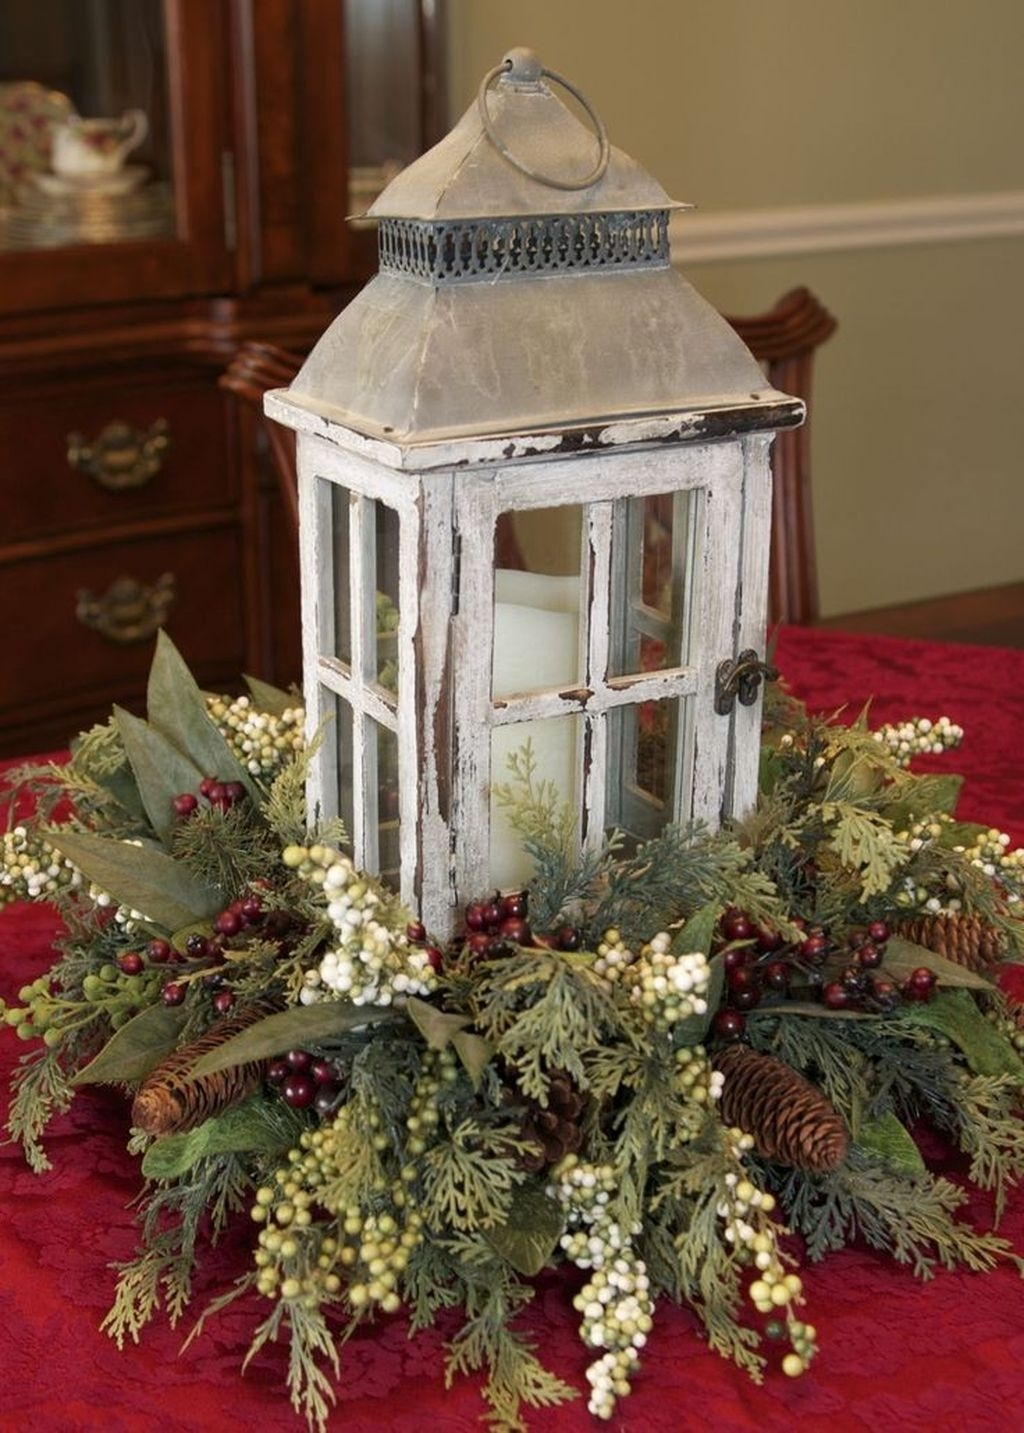 Vintage Christmas Decor Ideas For This Winter 30